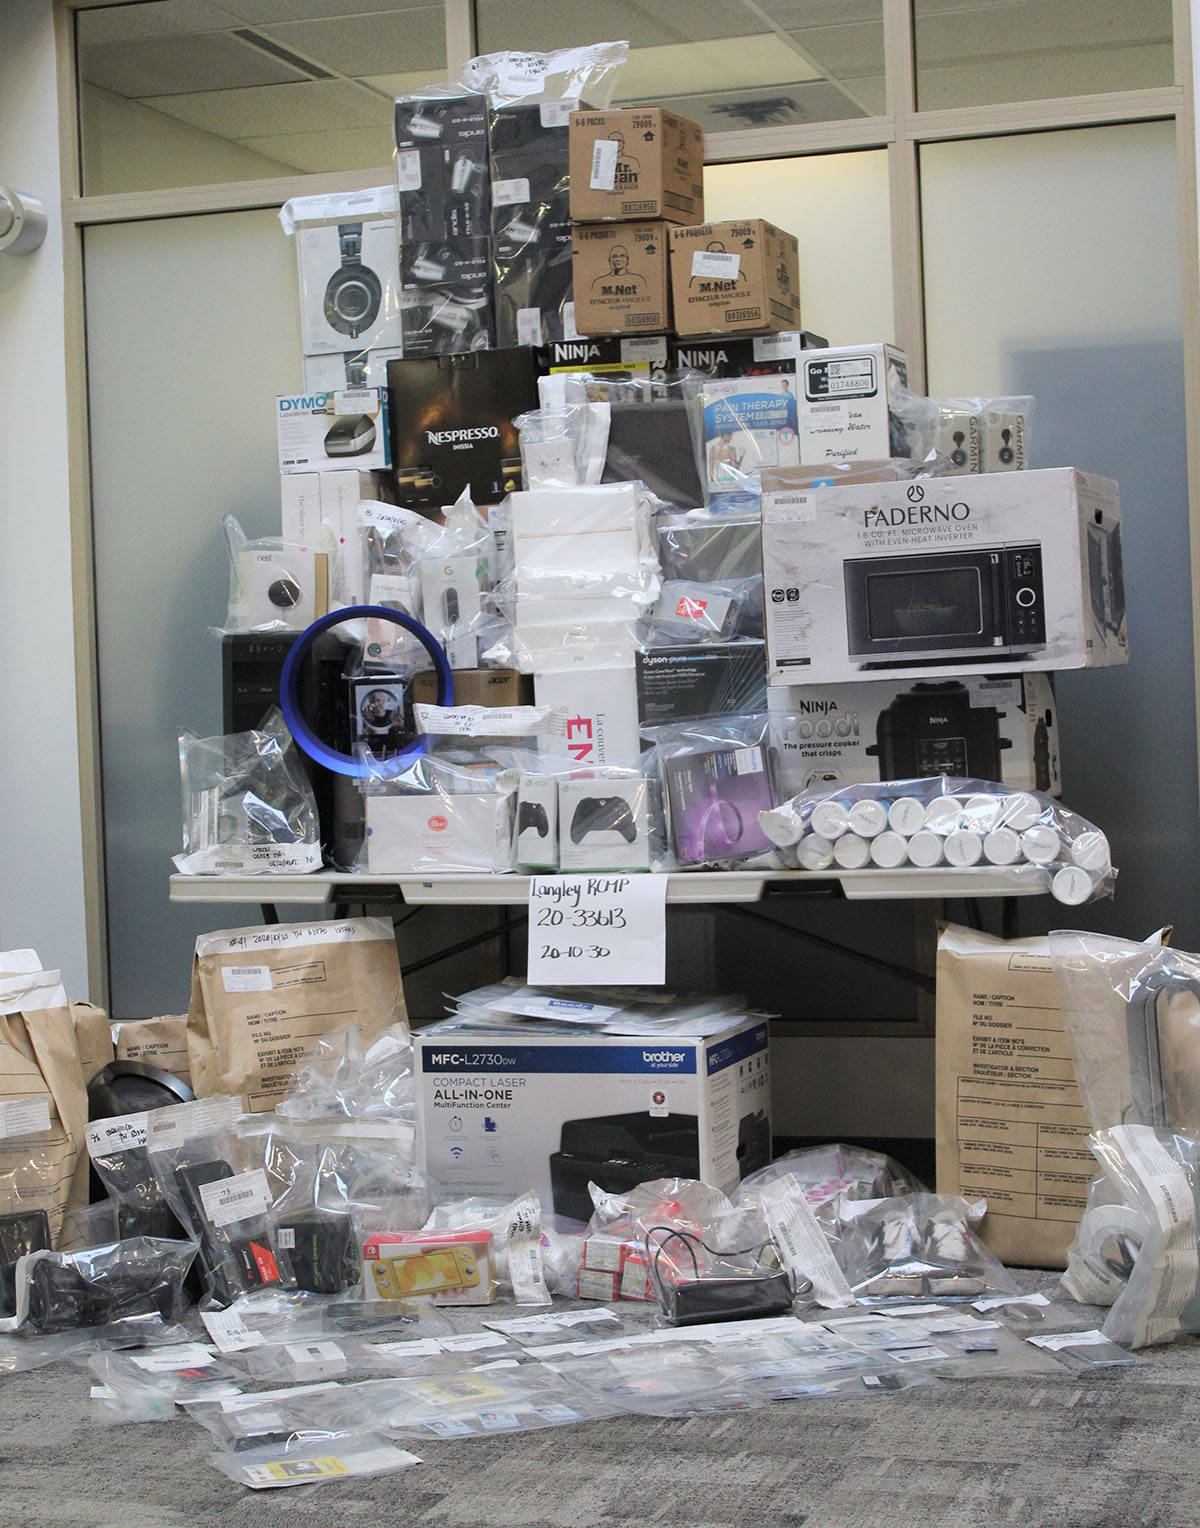 The Langley RCMP released a photo of items seized from a home in Willloughby on Oct. 30, 2020. (Langley RCMP)